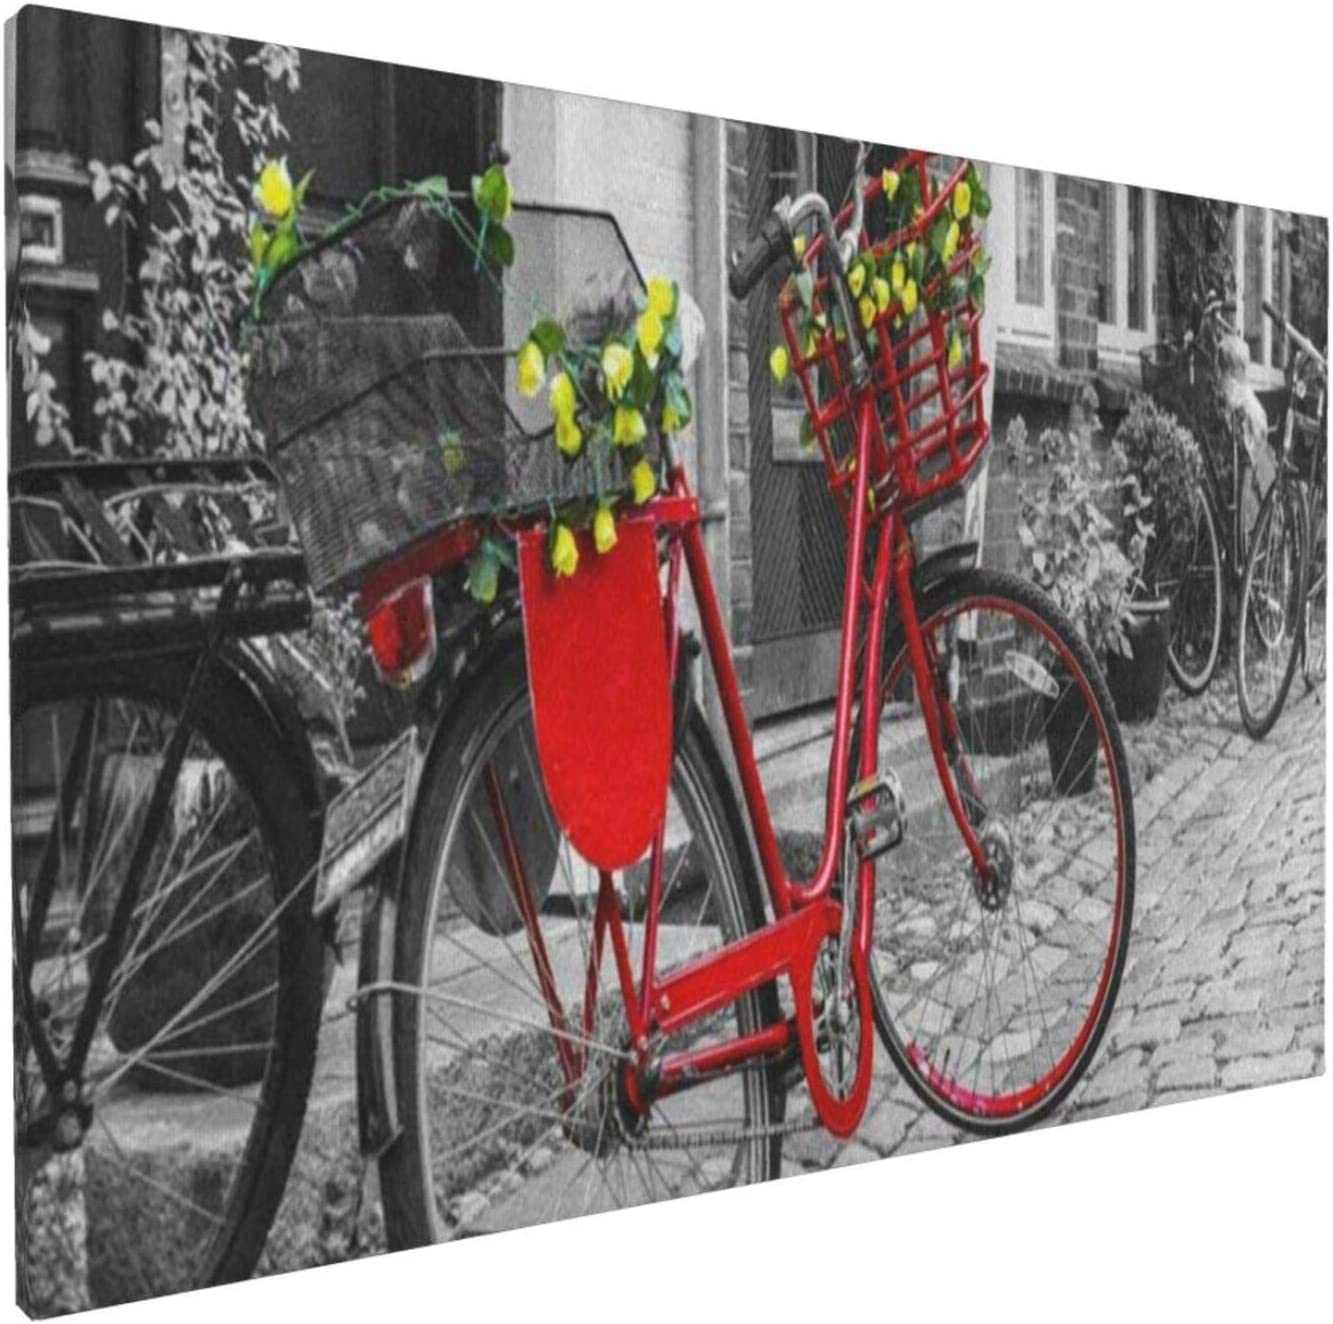 Abstract Wall Art Gallery Wall Decor, Vintage Red Bicycle On Cobblestone Street Wall Paintings, Farmhouse Decor for the Home, Wall Pictures for Living Room Frameless Wall Hanging Decor Paintings 18x12 Inch